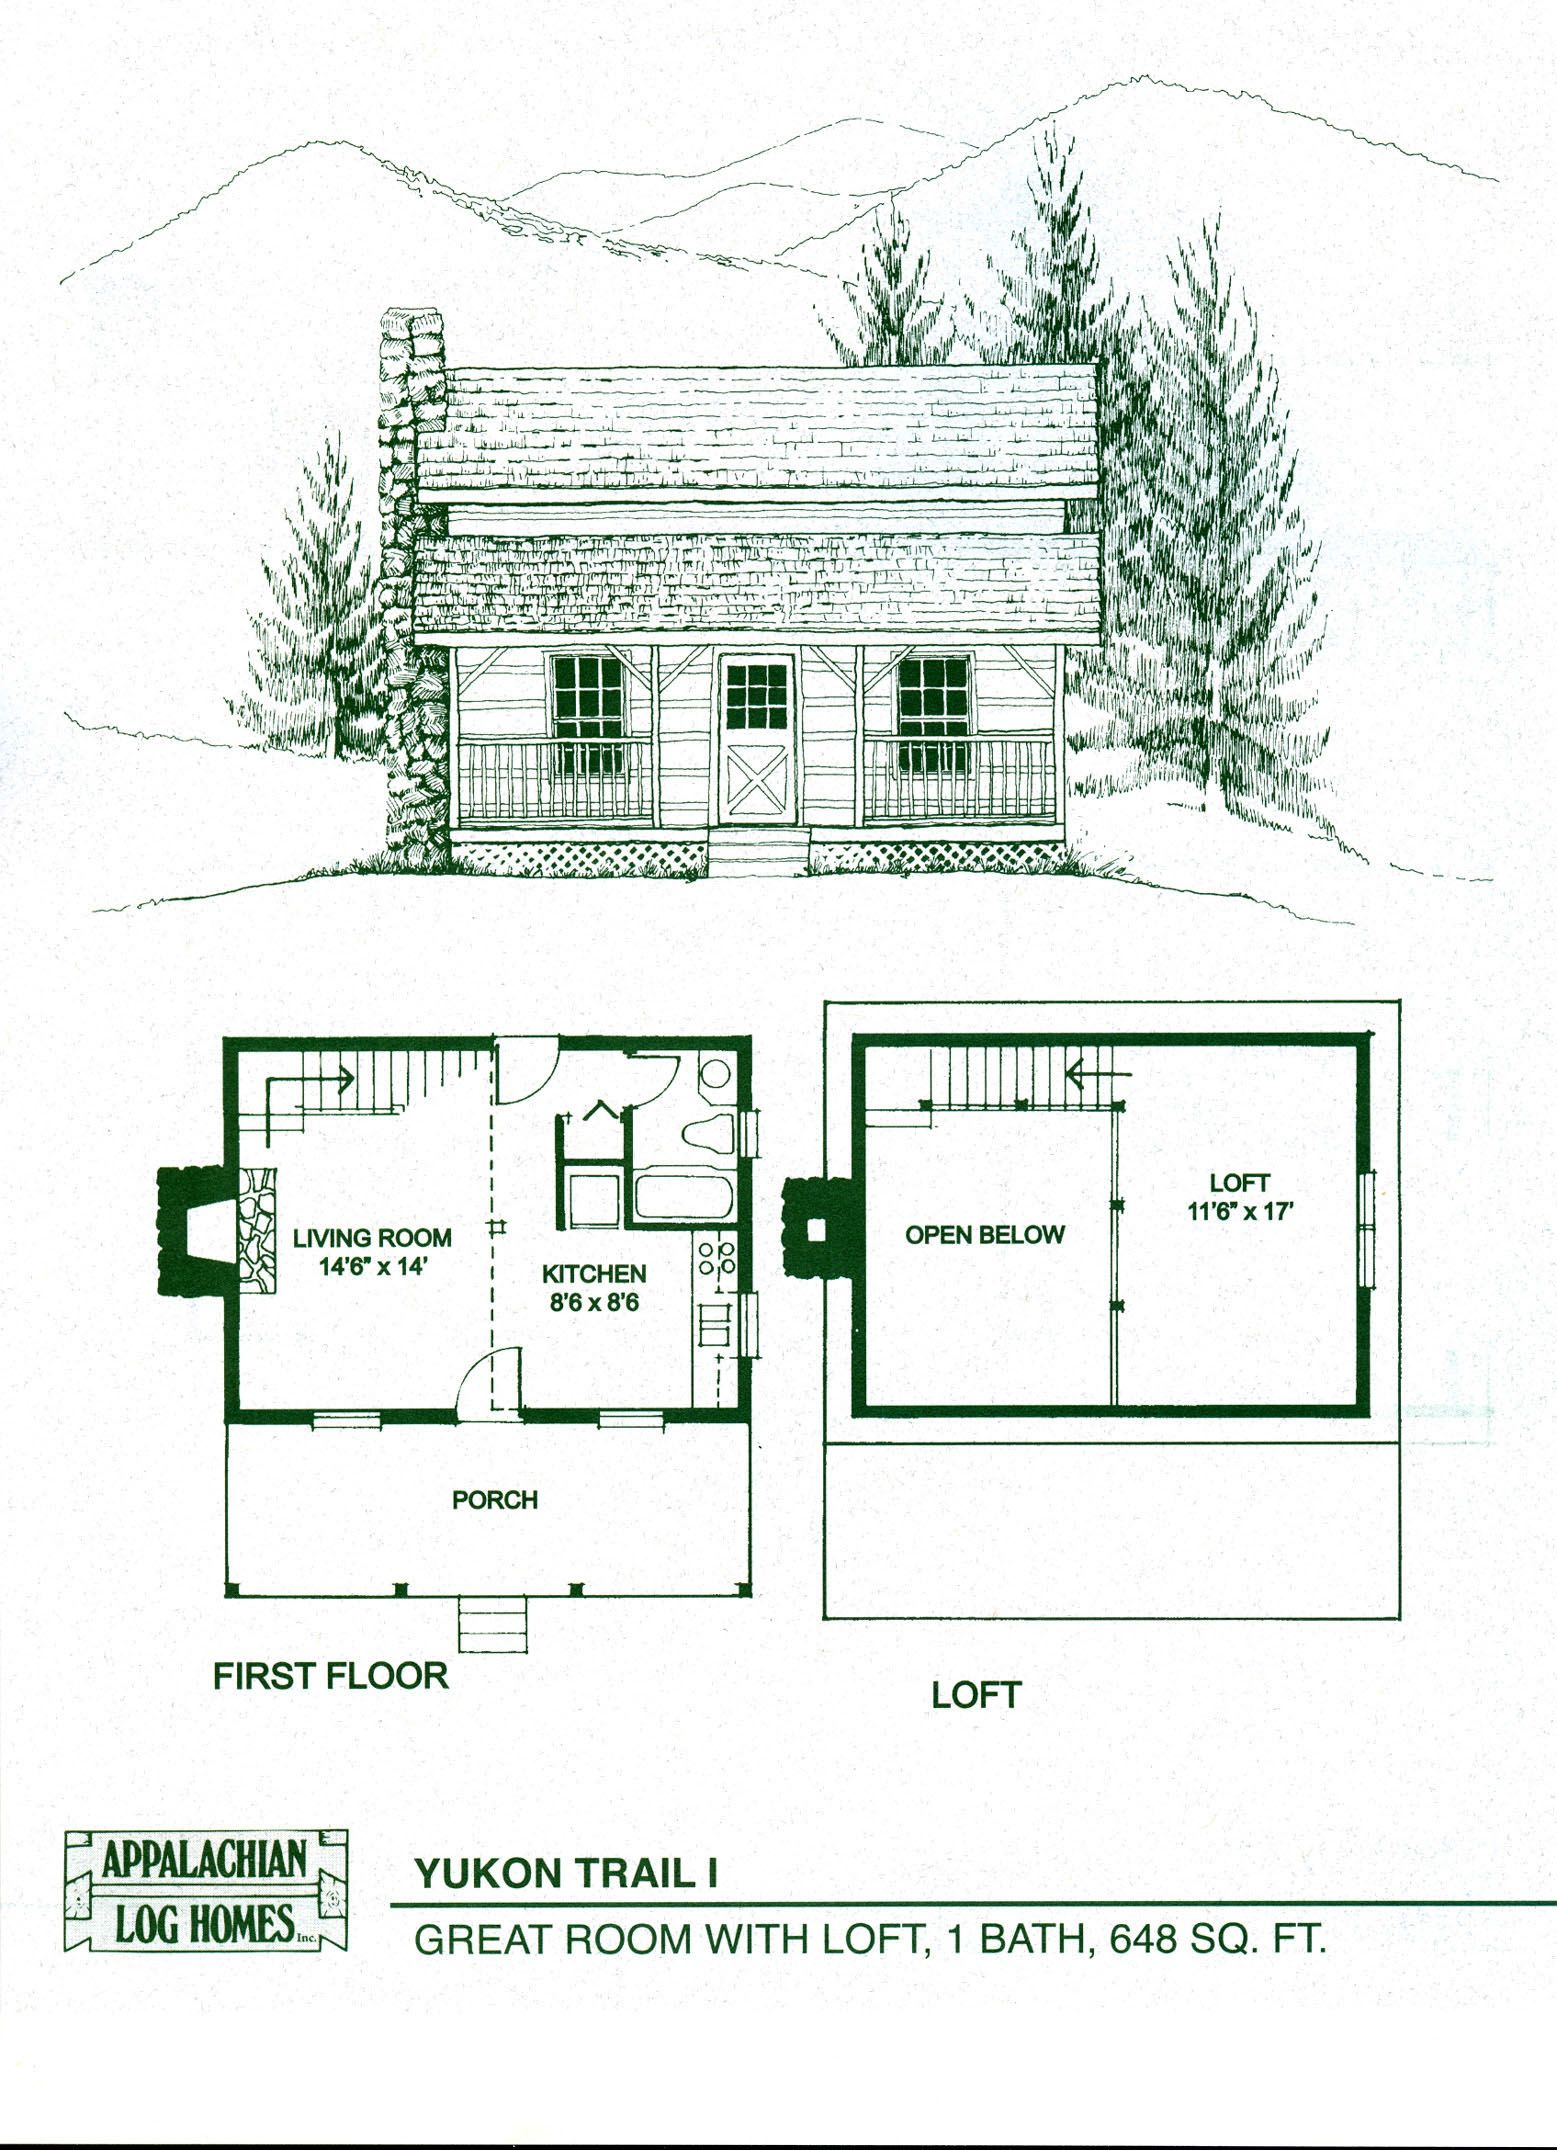 Log home floor plans log cabin kits appalachian log for Cabin home floor plans